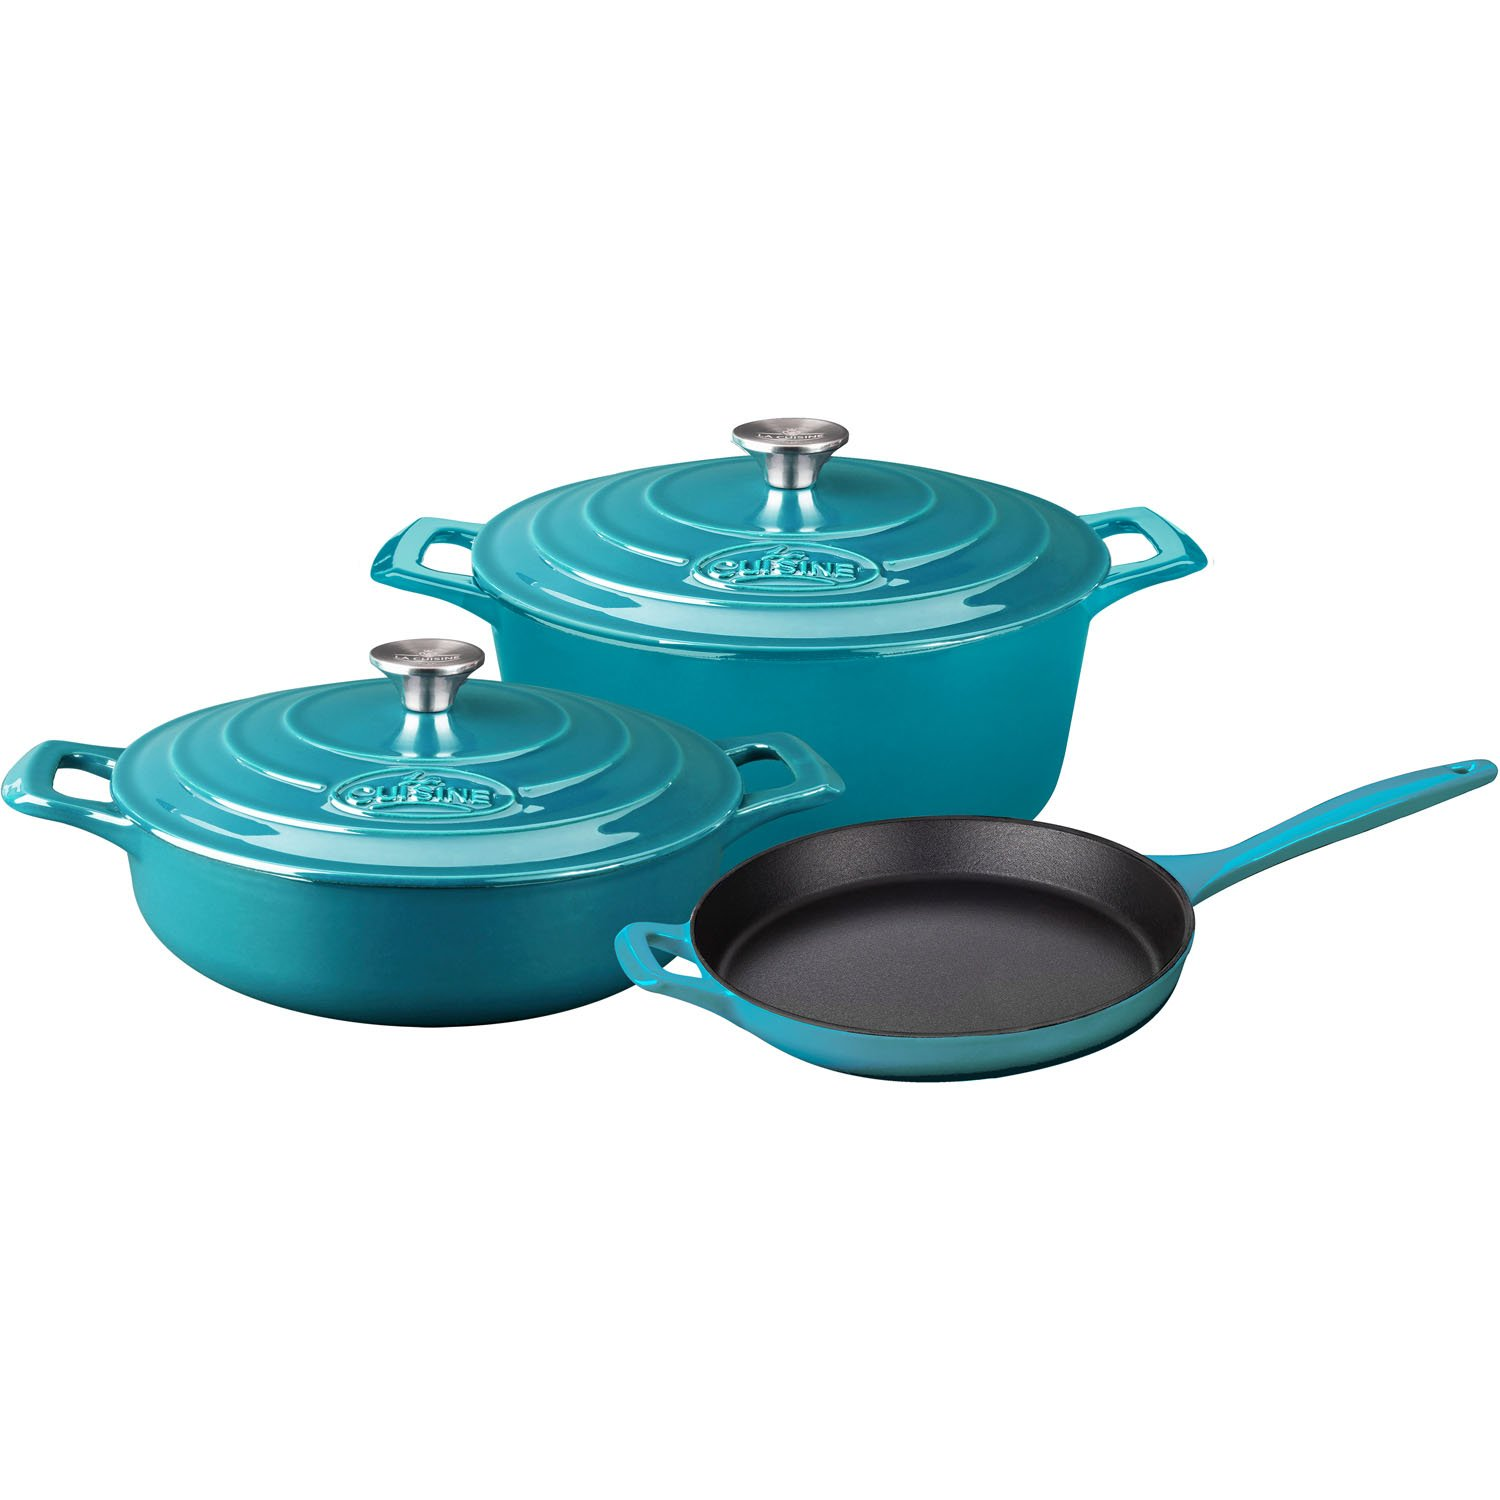 CDM product La Cuisine LC 2675 5-Piece Enameled Cast Iron Cookware Set in High Gloss Teal (Round Casserole), big image